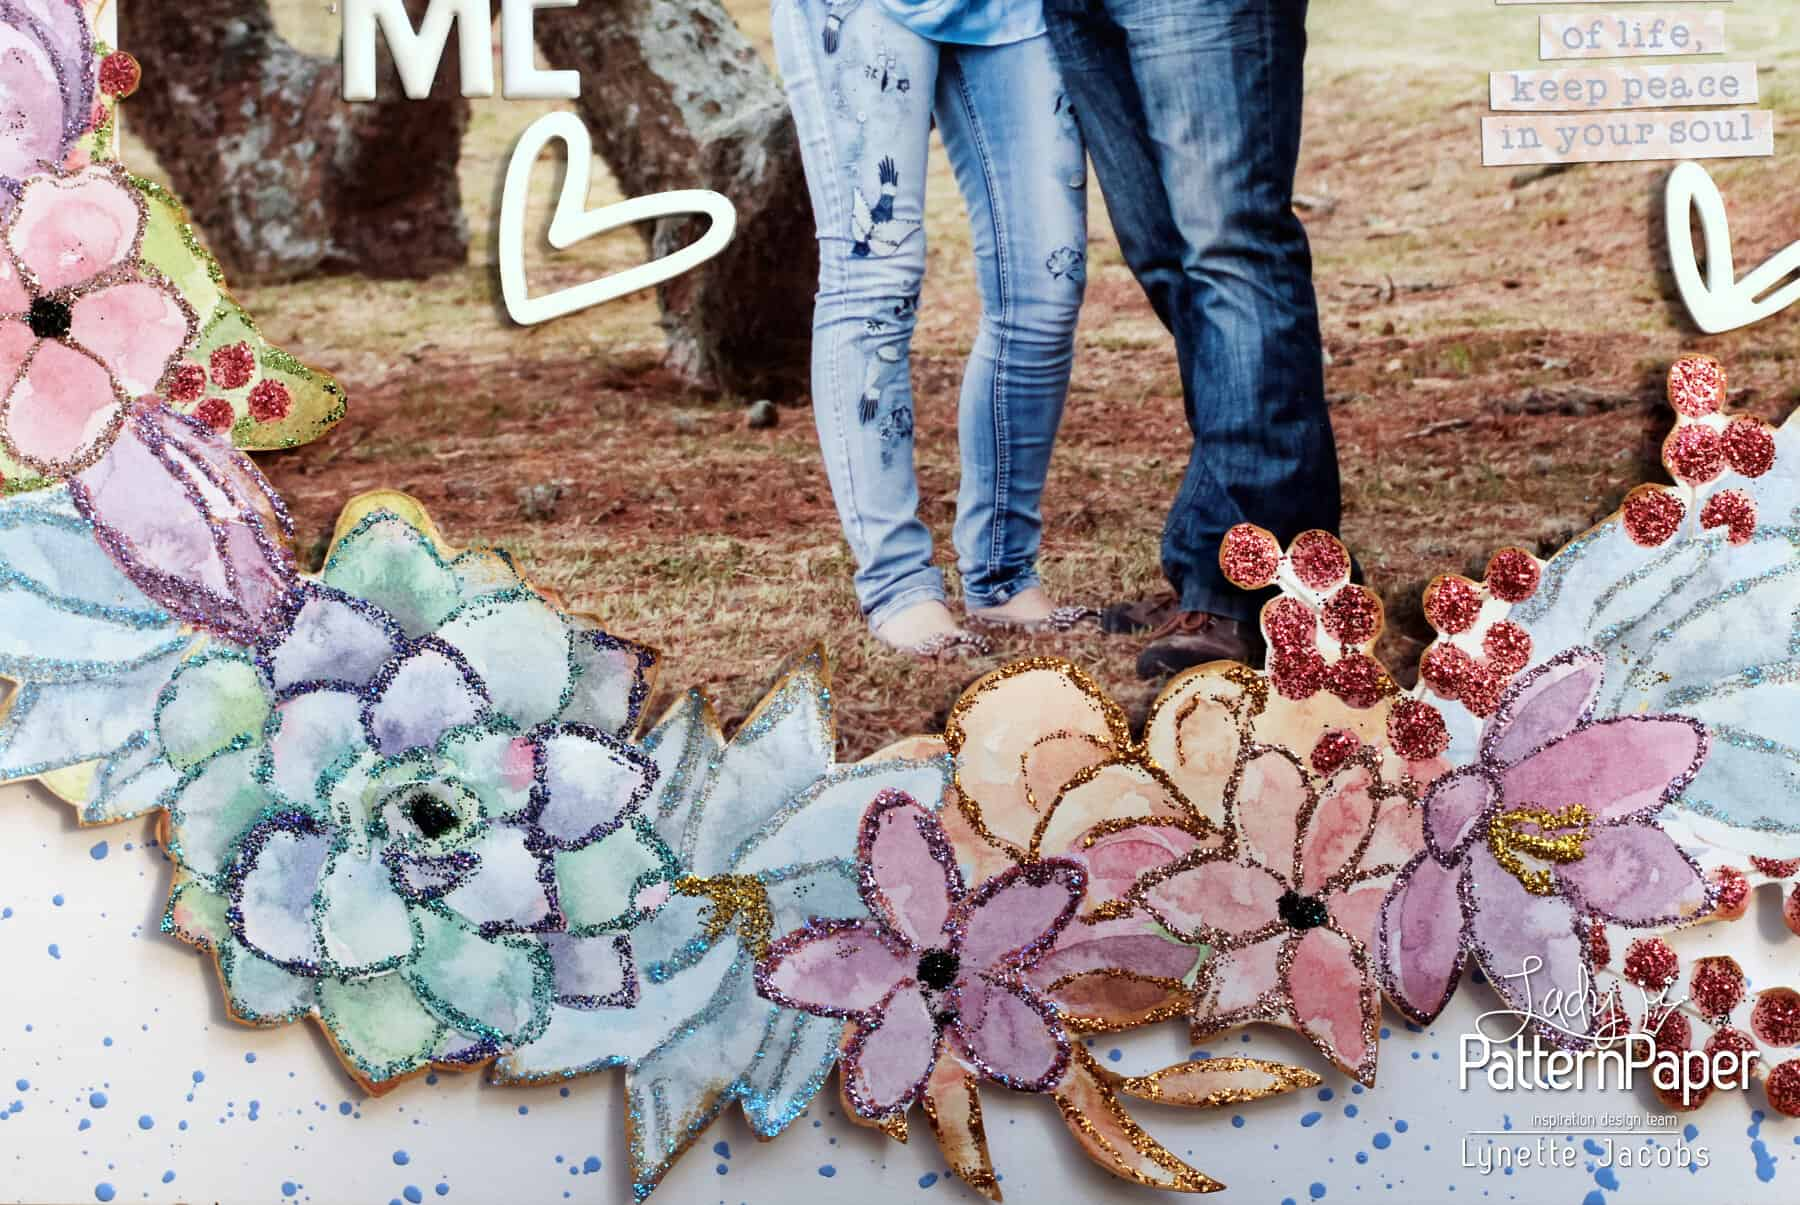 You And Me - Wreath - Bohemian Muse Layout